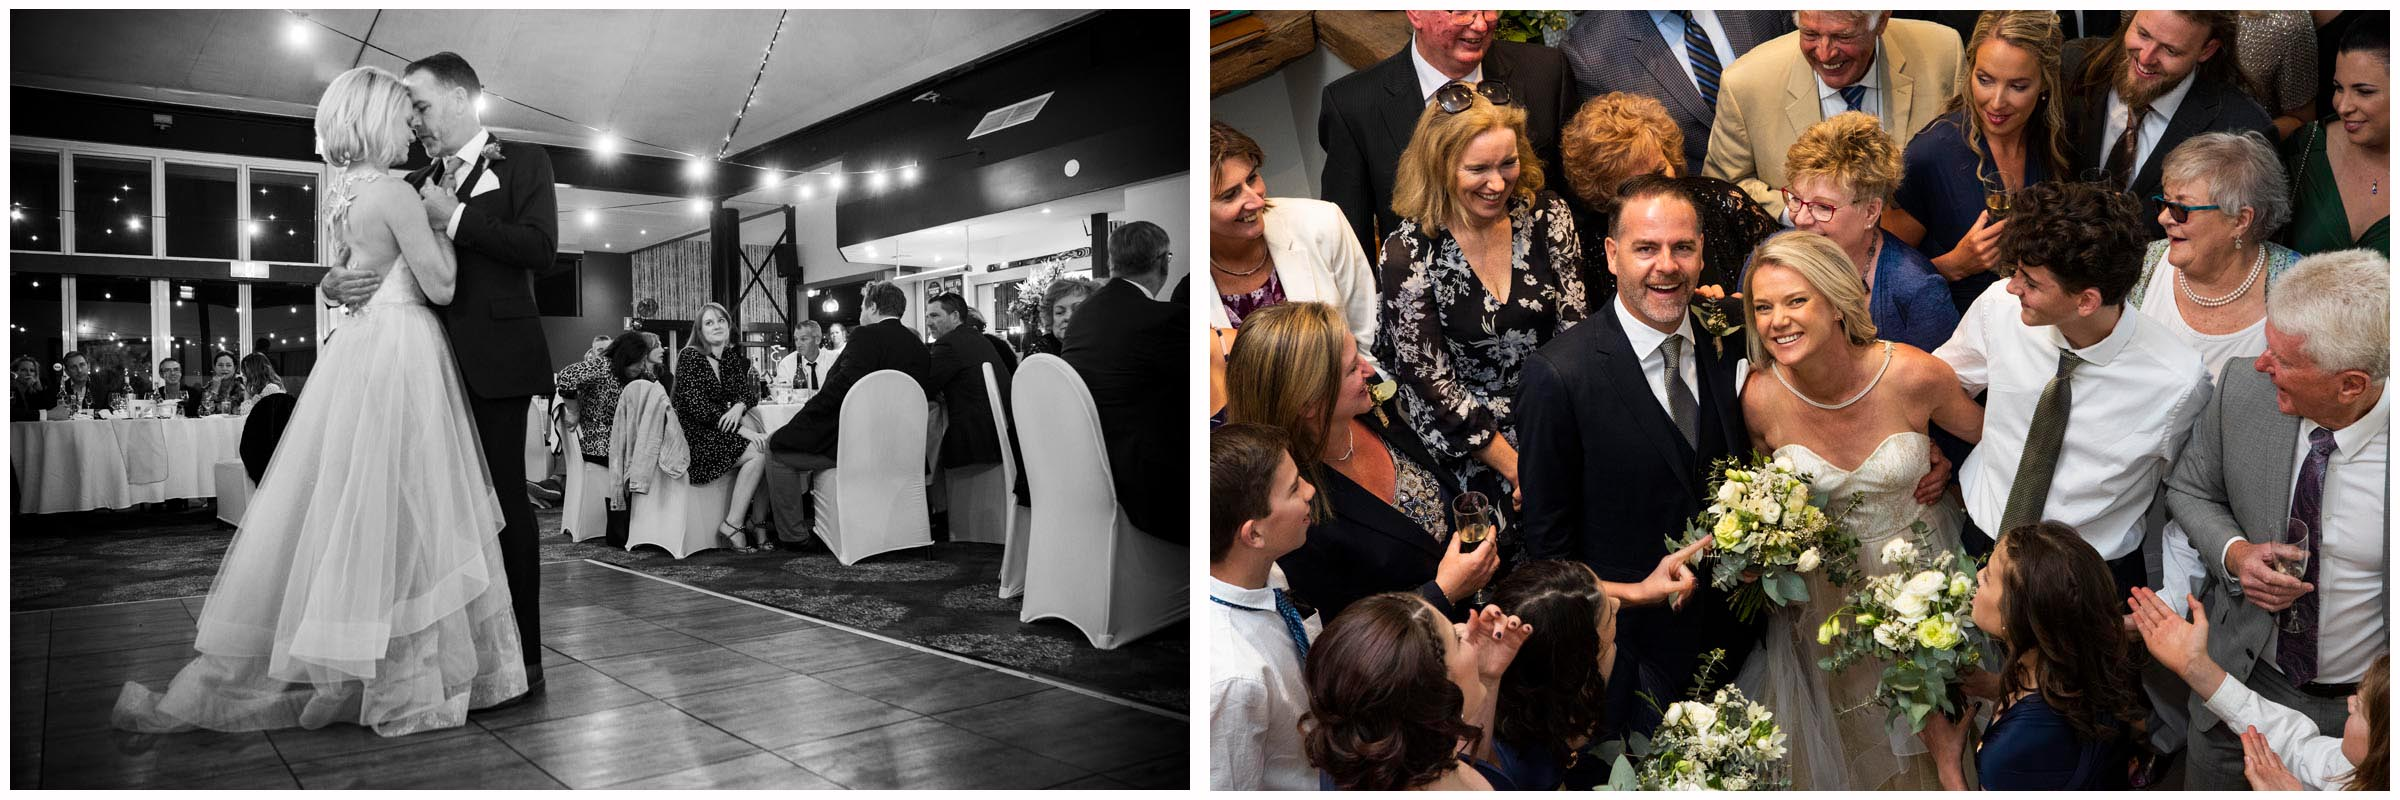 Two beautiful moments from the most recent wedding - Niki & Liam - congratulations